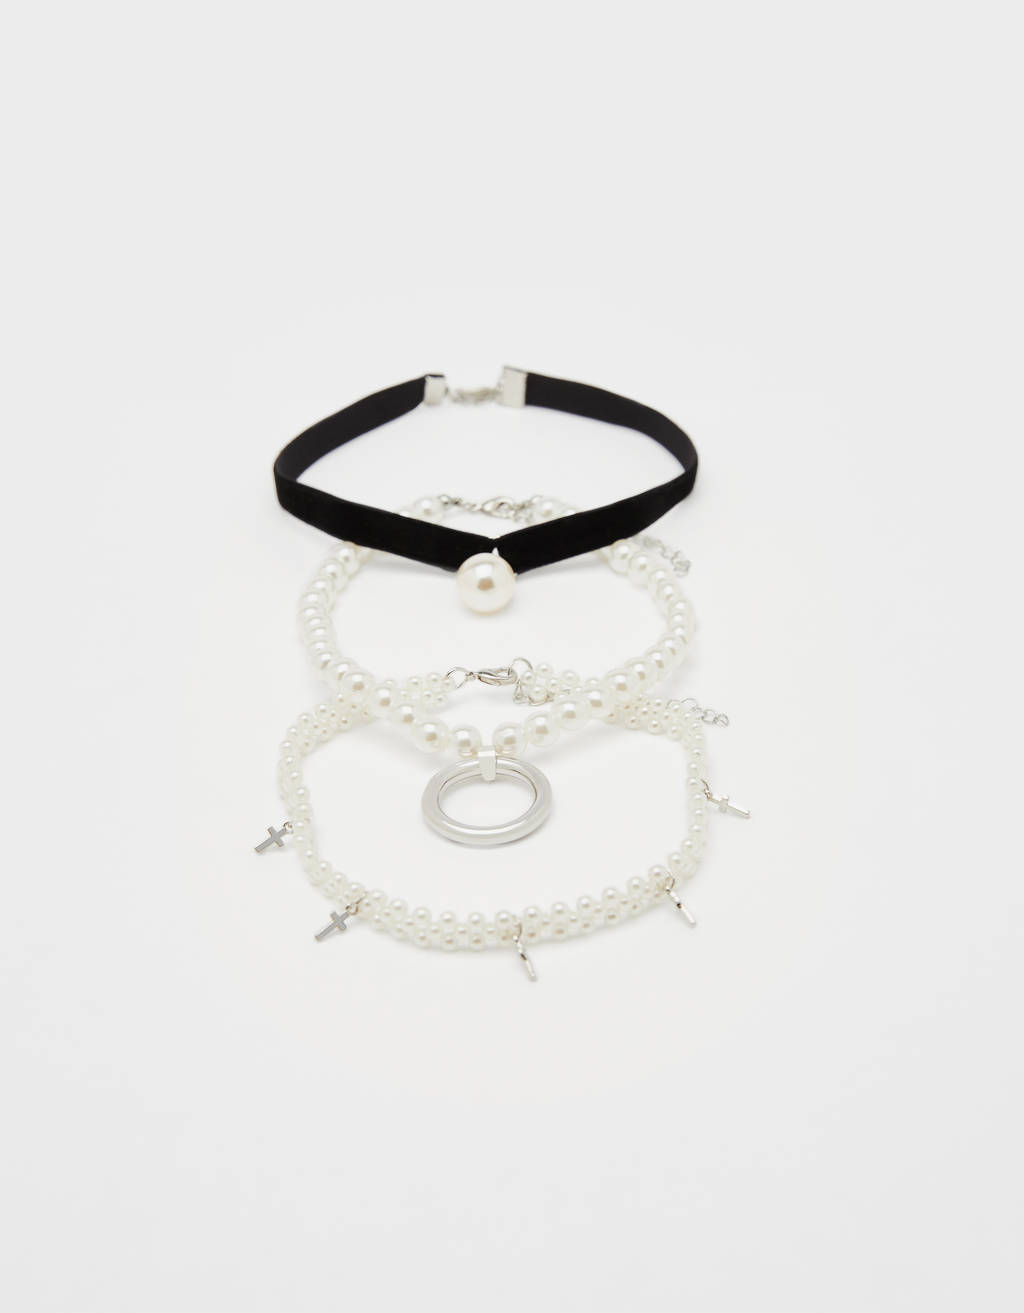 Set of pearl bead choker necklaces